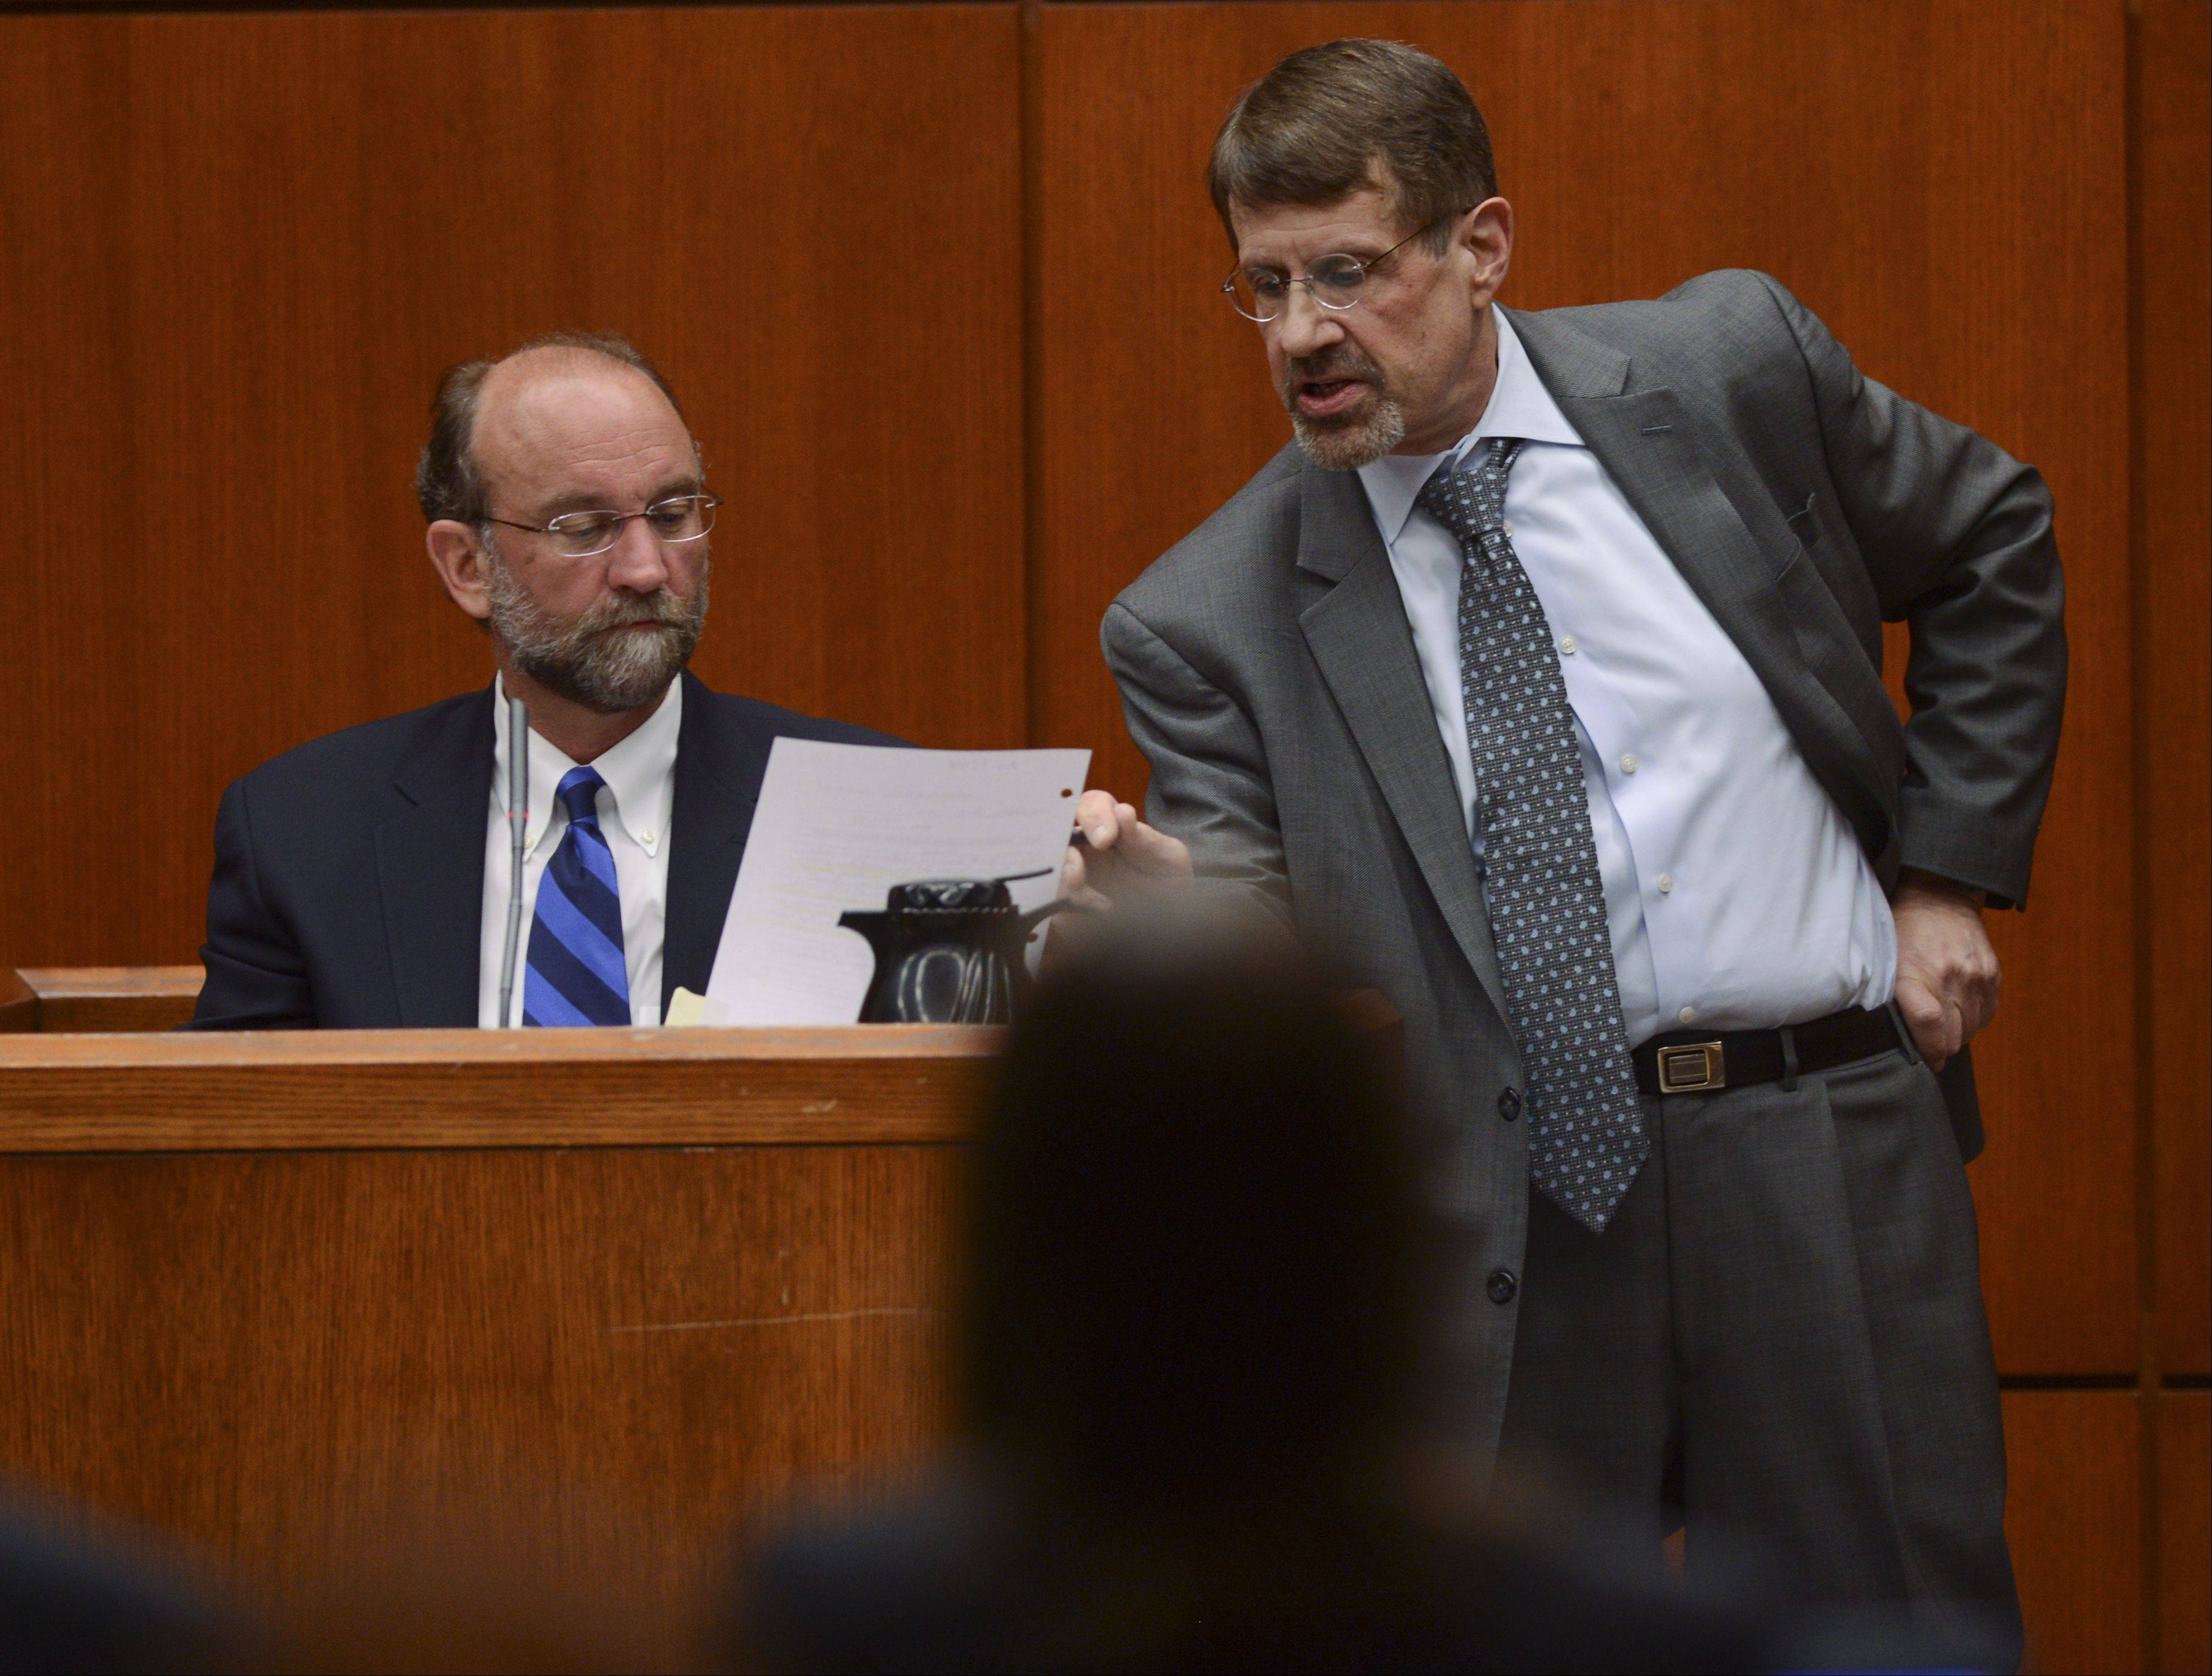 Forensic psychologist John Murray looks at a medical report handed to him by defense attorney Richard Kling as he testifies about mental state of convicted murderer Jacob Nodarse on Tuesday at the trial of Nodarse's co-defendant, Johnny Borizov.